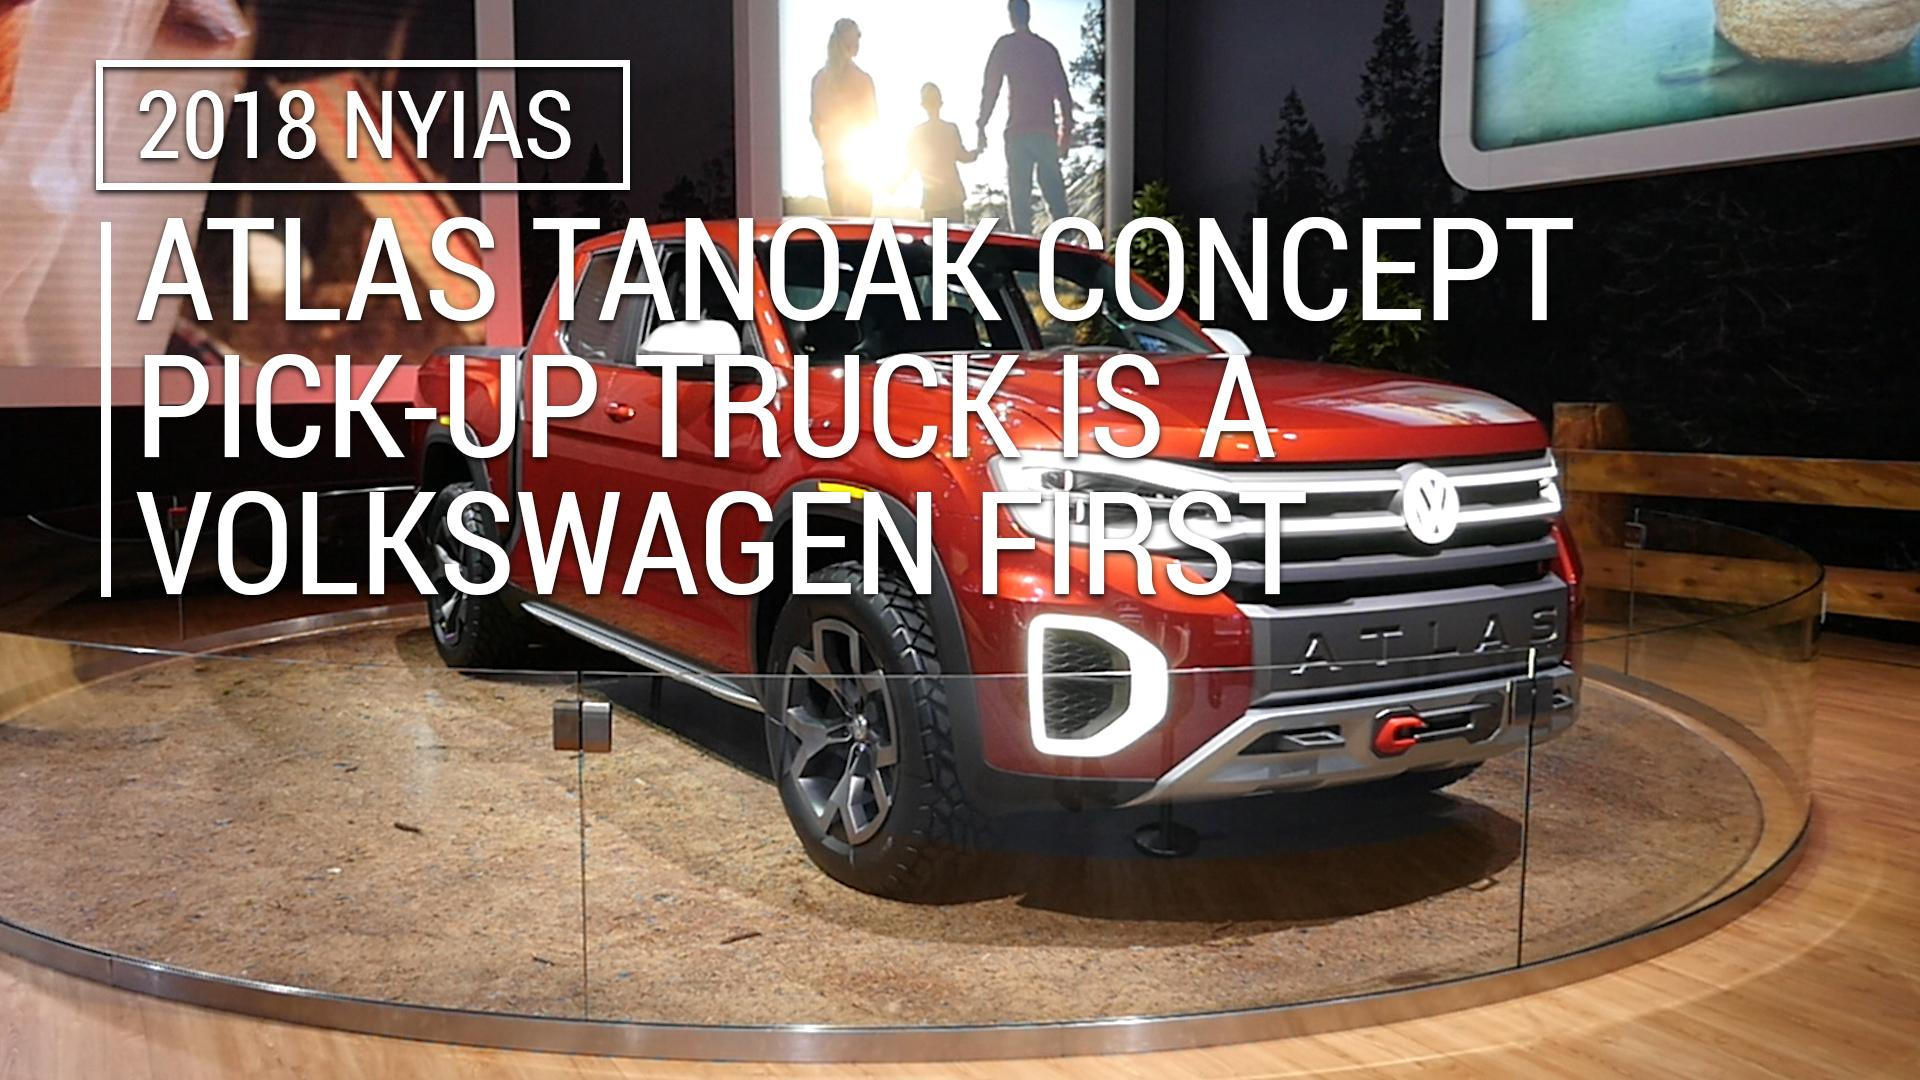 Atlas Tanoak Concept pick-up truck is a Volkswagen first